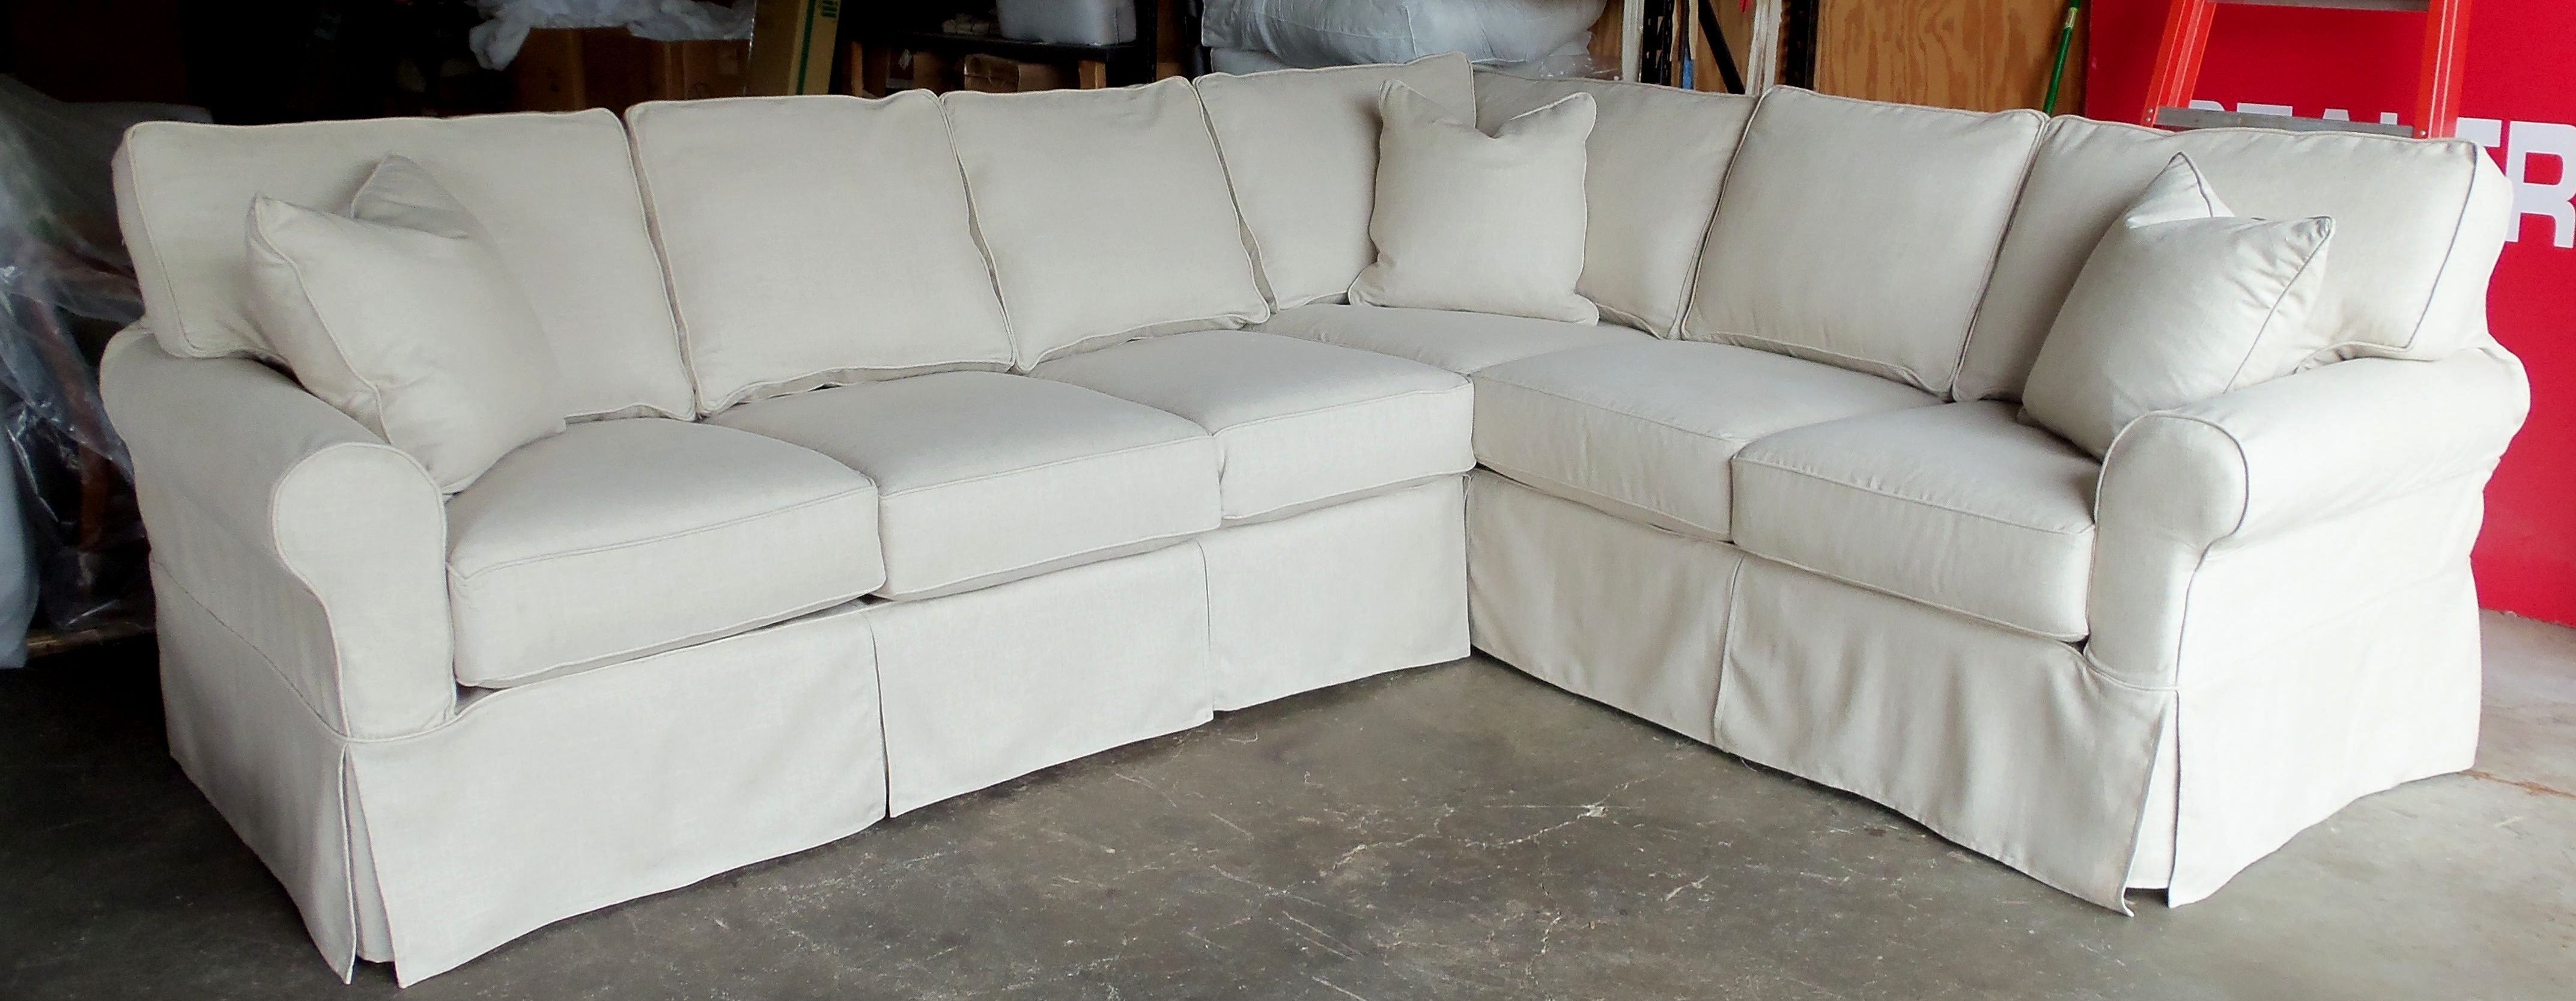 lovely sectional sofas on sale architecture-Elegant Sectional sofas On Sale Ideas